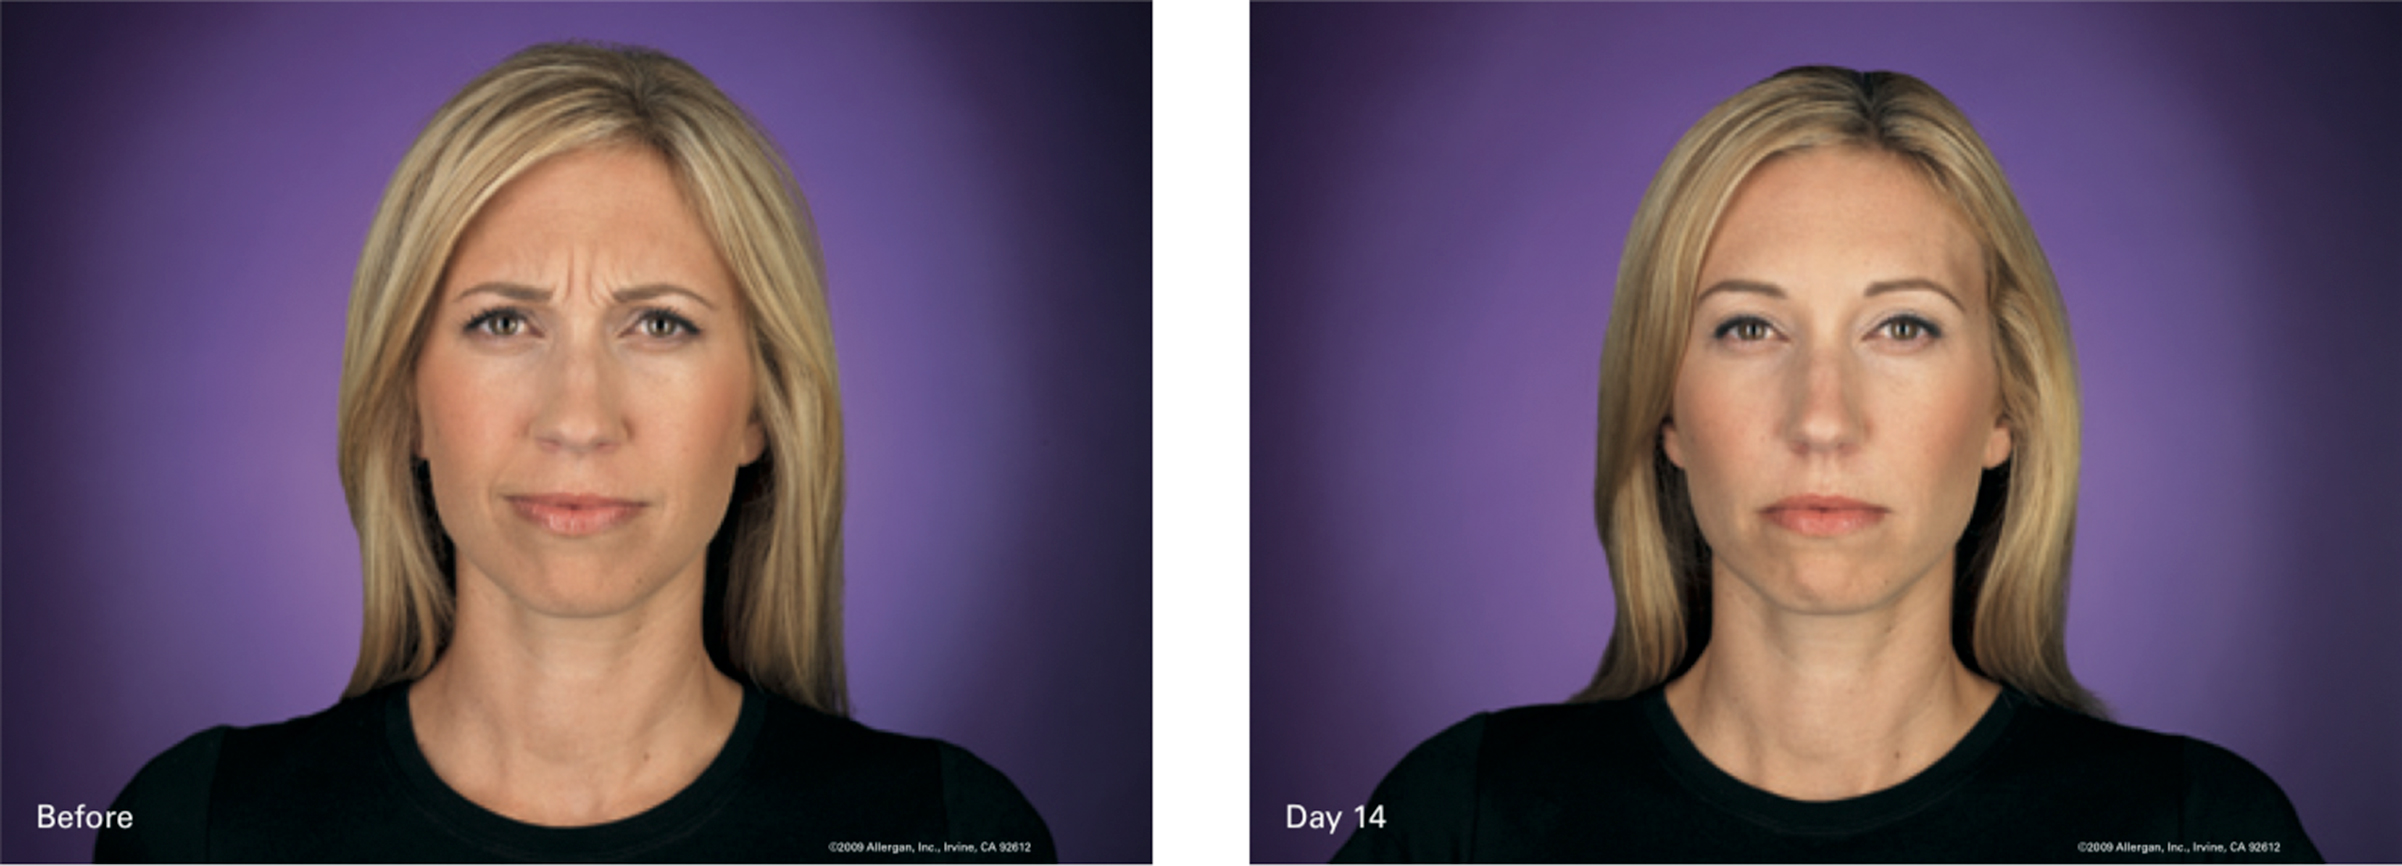 Blonde woman frowning before and 14 days after Botox Treatment.